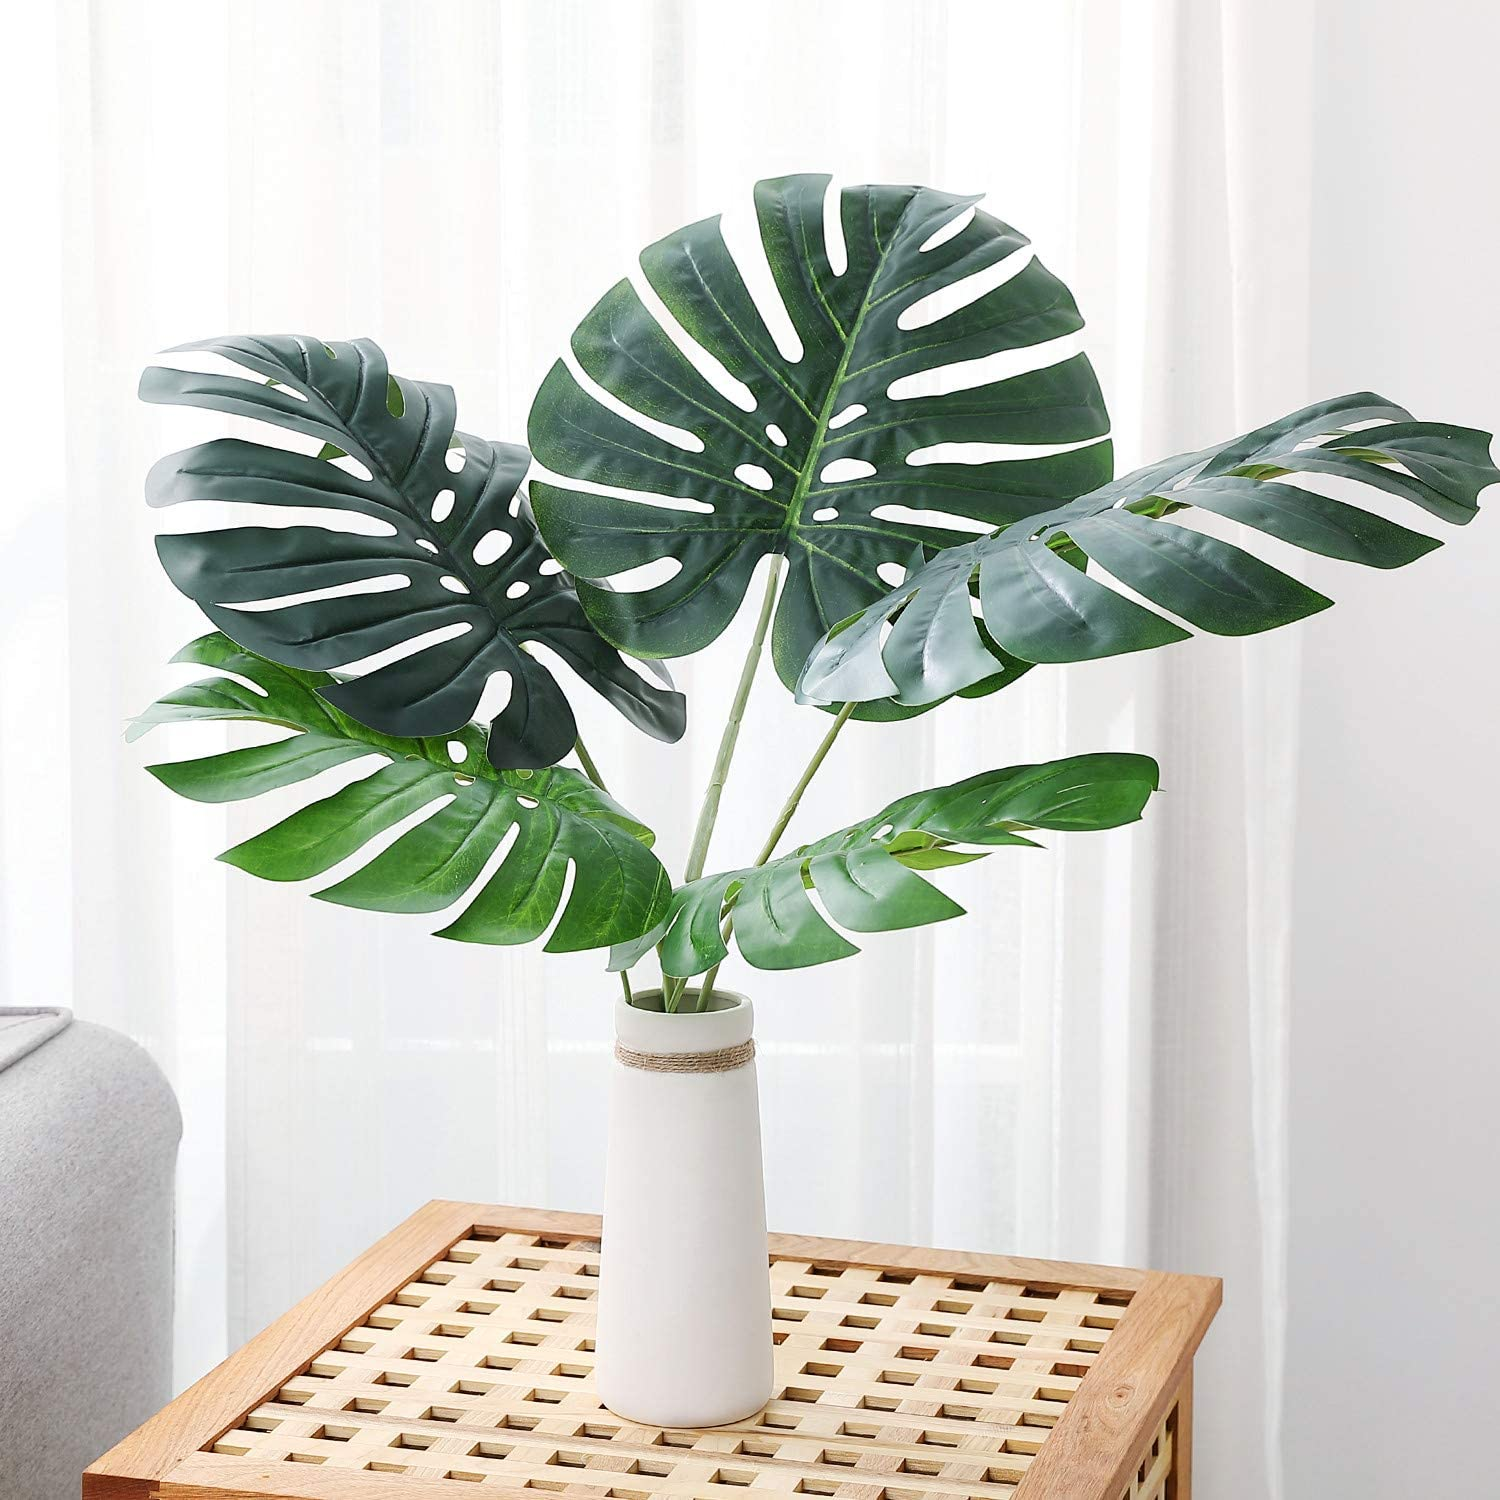 Amazon Com Olivachel Artificial Leaves Tropical Monstera Leaves Palm Tree Leaf Plant Diy Decorations For Home Kitchen Wedding Party Monstera Leaves 5pcs Pack Furniture Decor